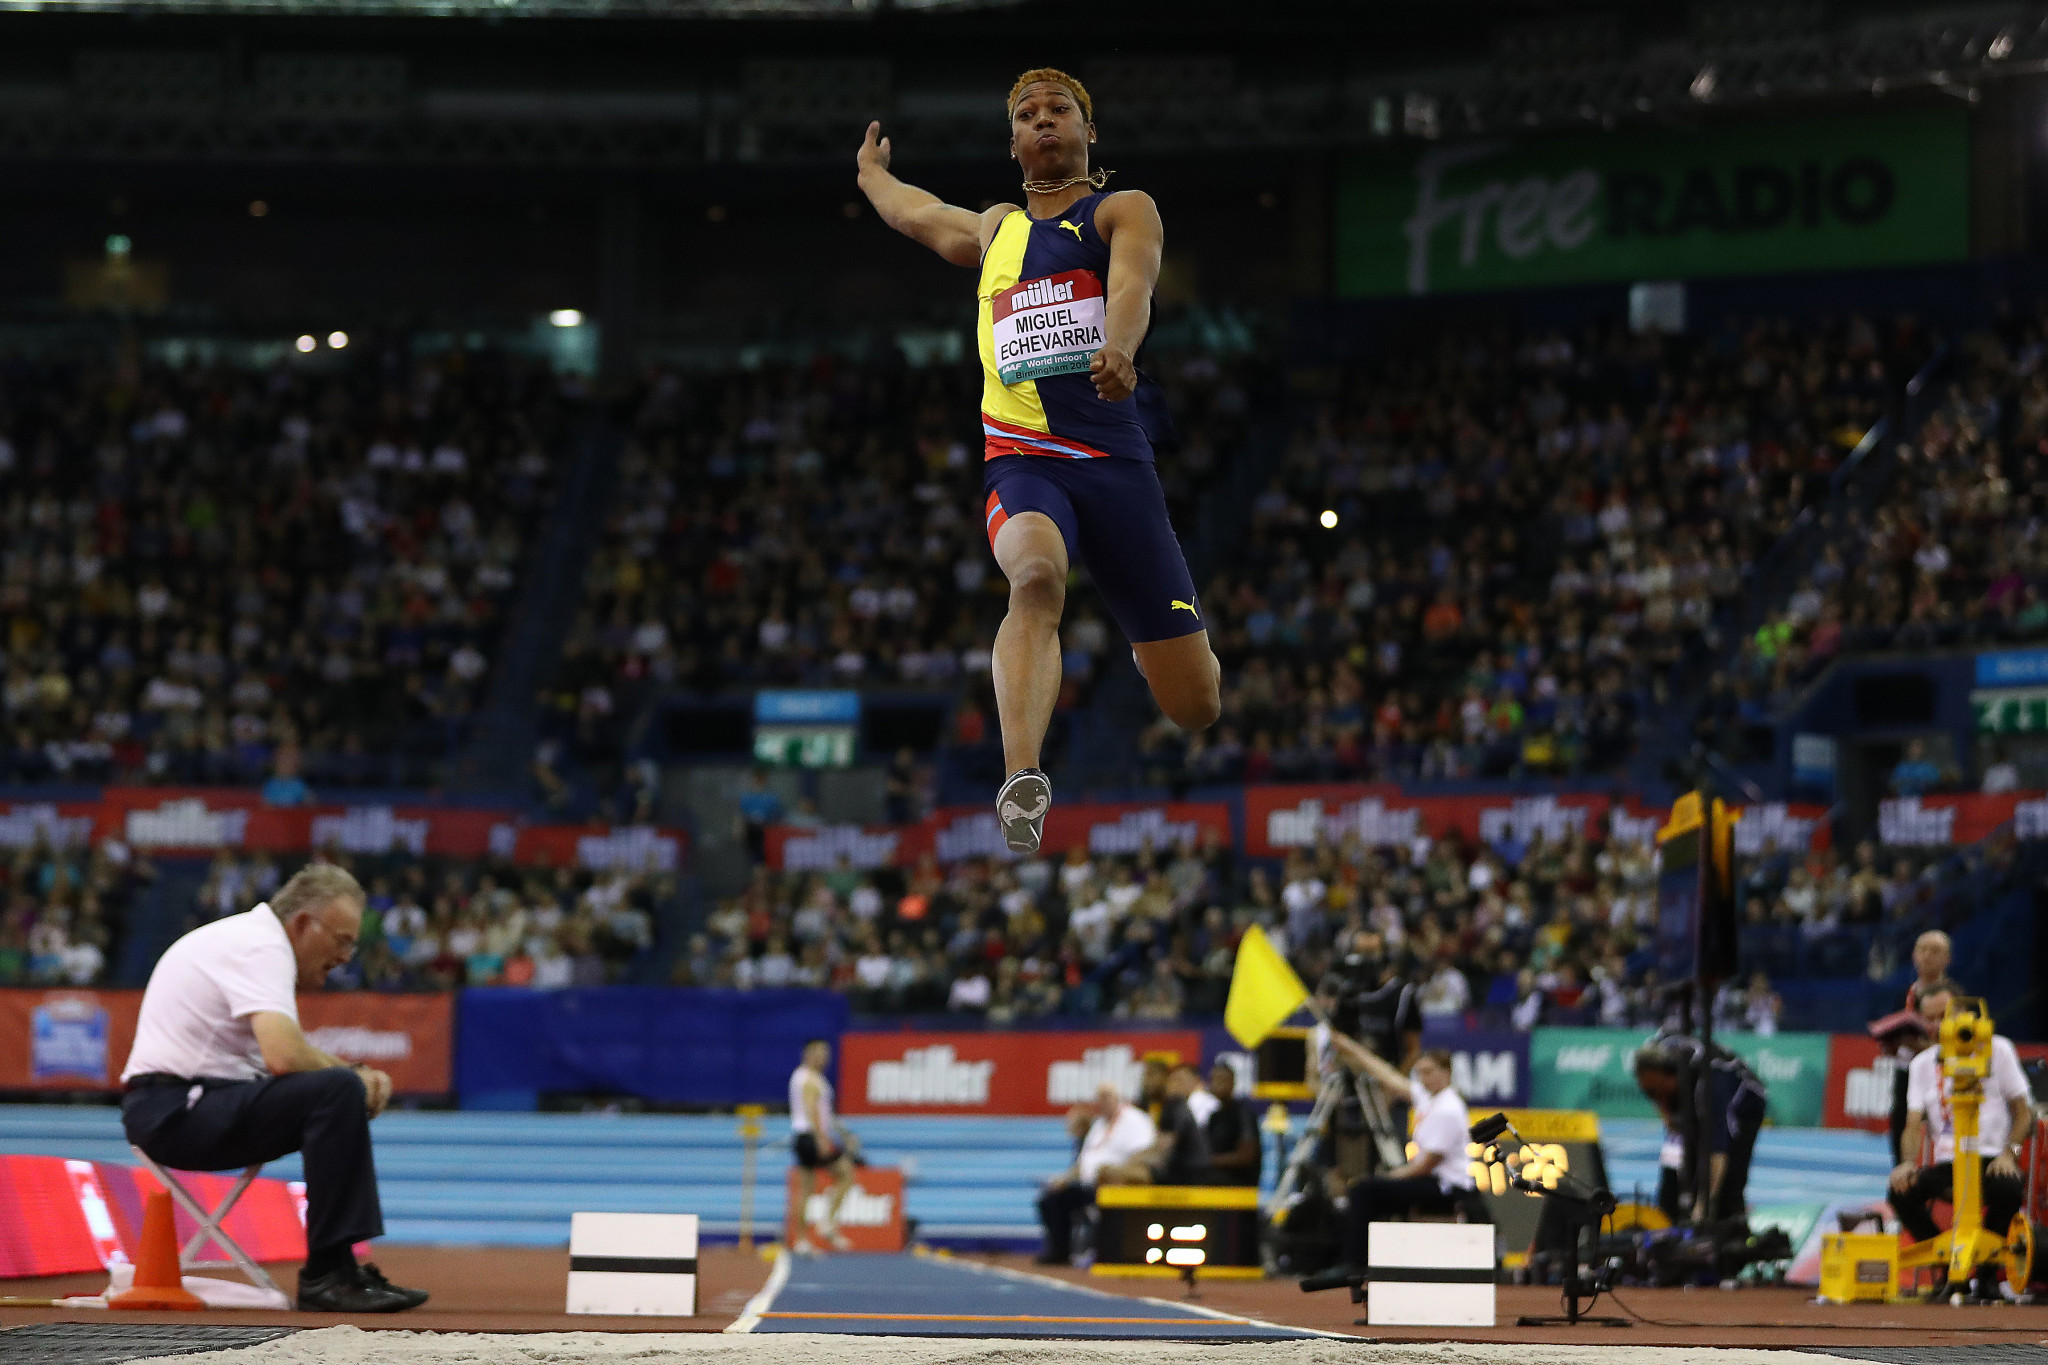 Seven events form the 2020 World Athletics Indoor Tour ©Getty Images